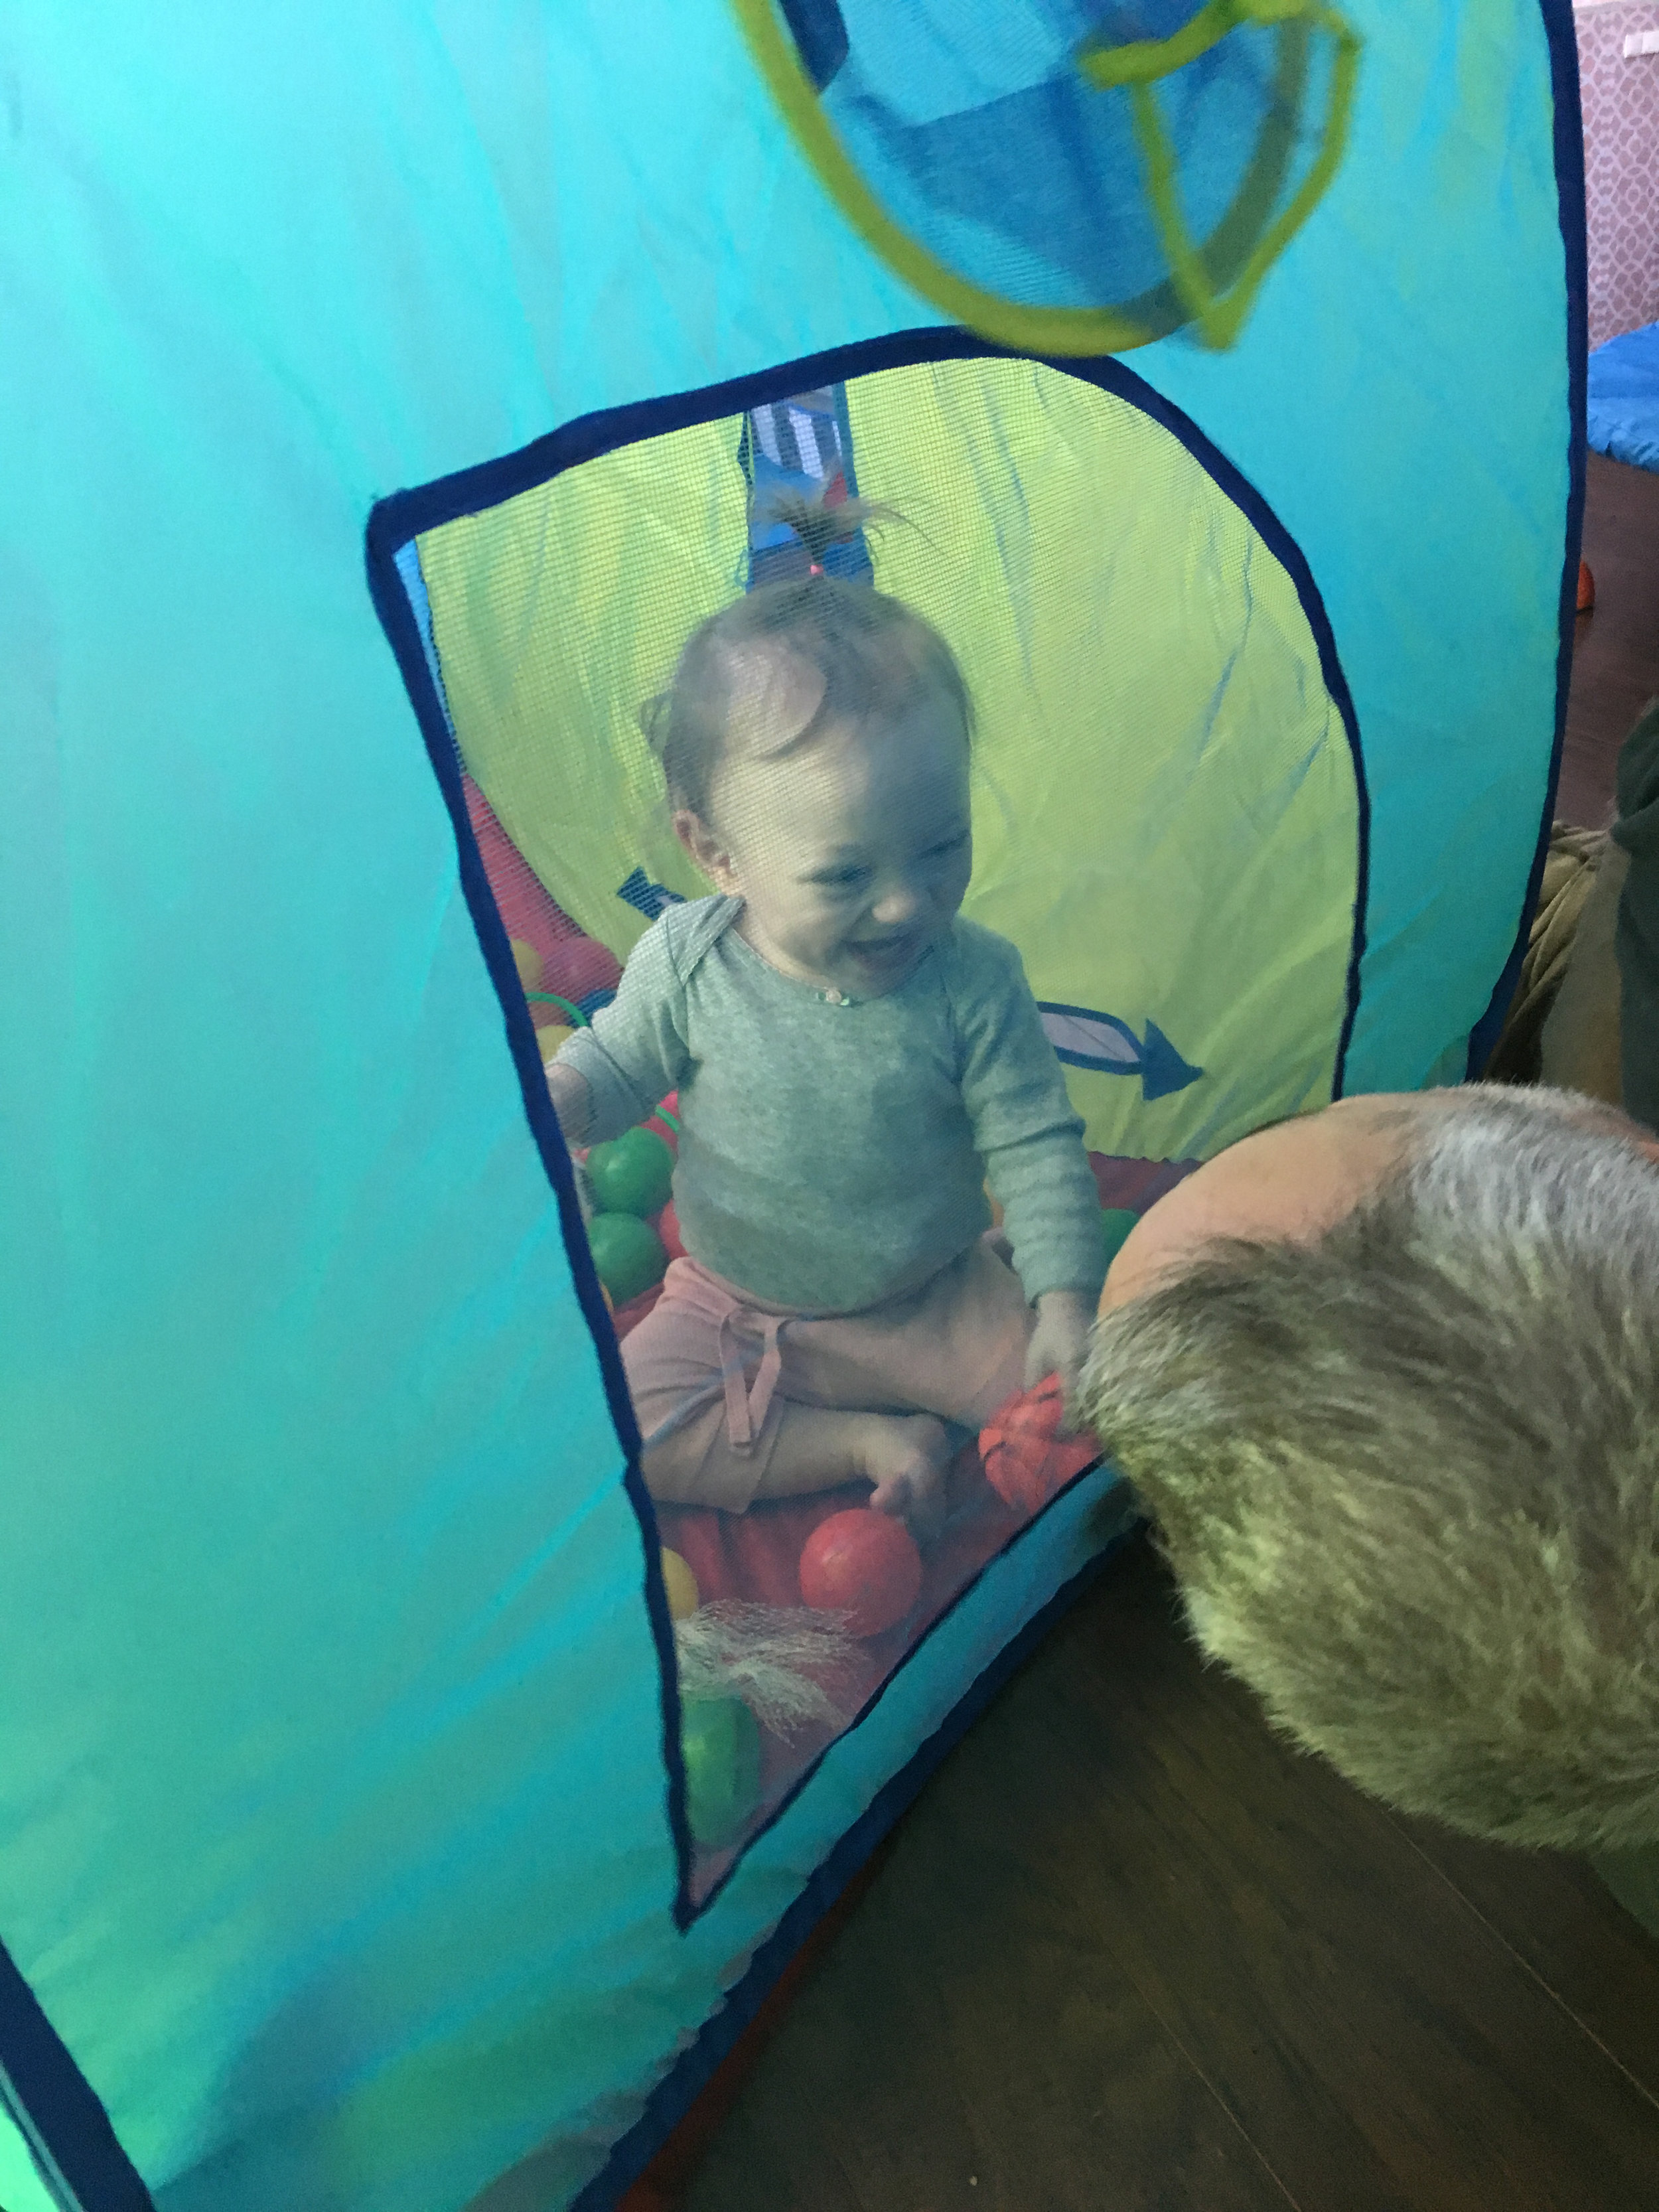 tent - We use a tent for so many things to build language. Adeline loves to relax in the tent and we do so calming activities in there. Most recently, we were pretending to go camping, we made a pretend fire, pretending to sleep in the tern, etc. A child go in the tent, out of the tent. We play peek-a boo with the doors in the tent, and its a good place to go when Adeline is a little overstimulated/sensory wise.